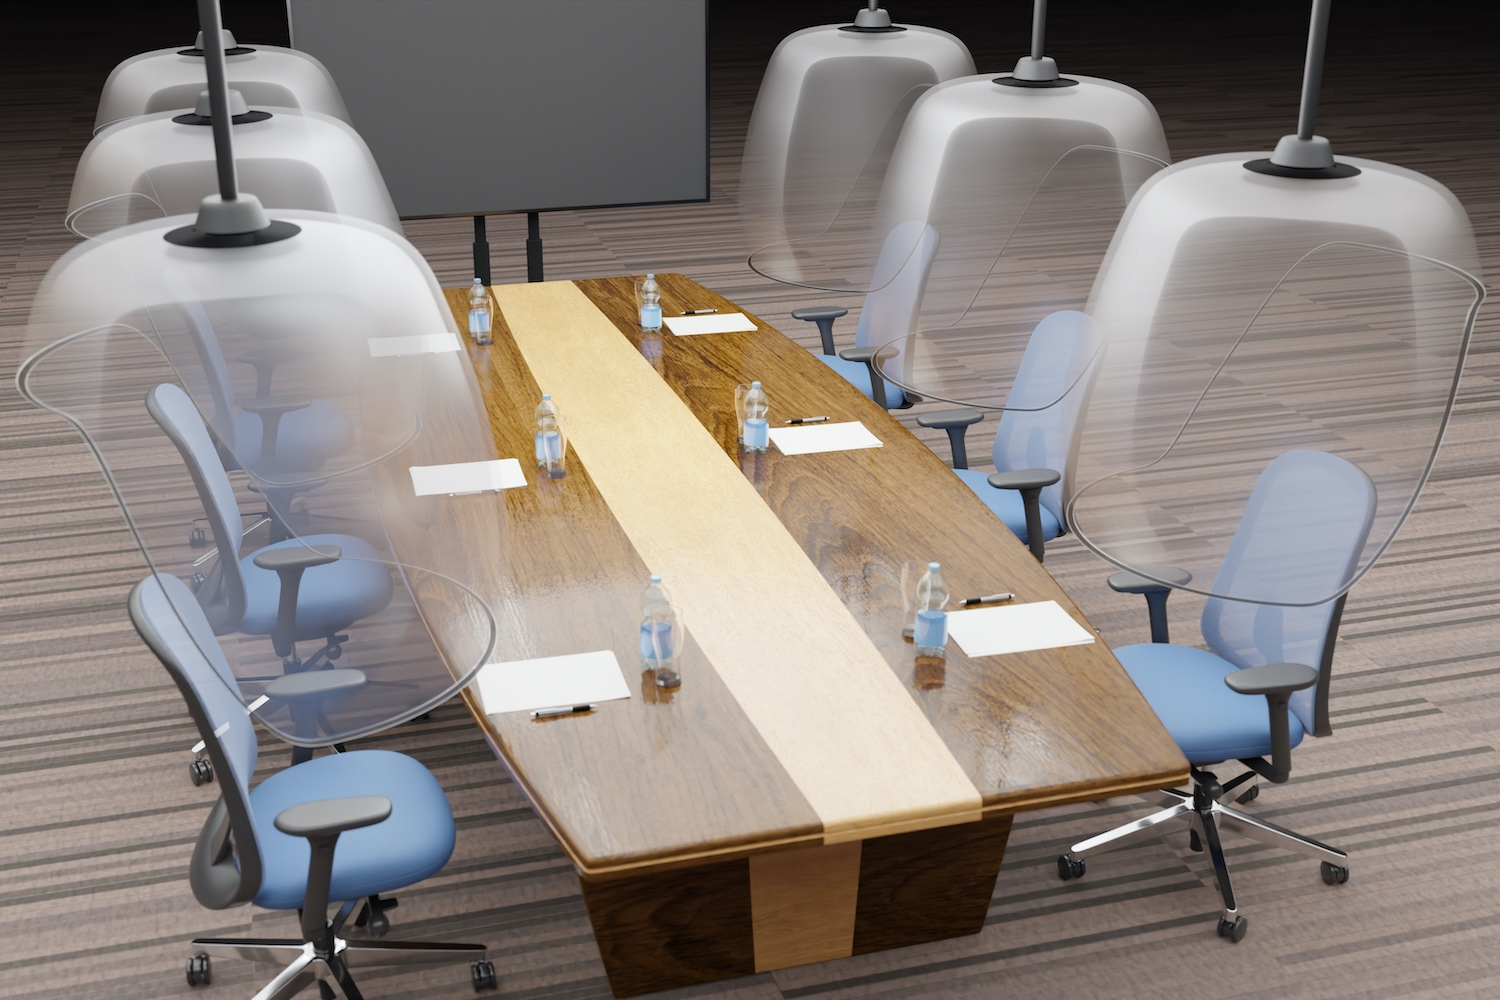 Design Ideas for the 2020 office - board table with protection pods